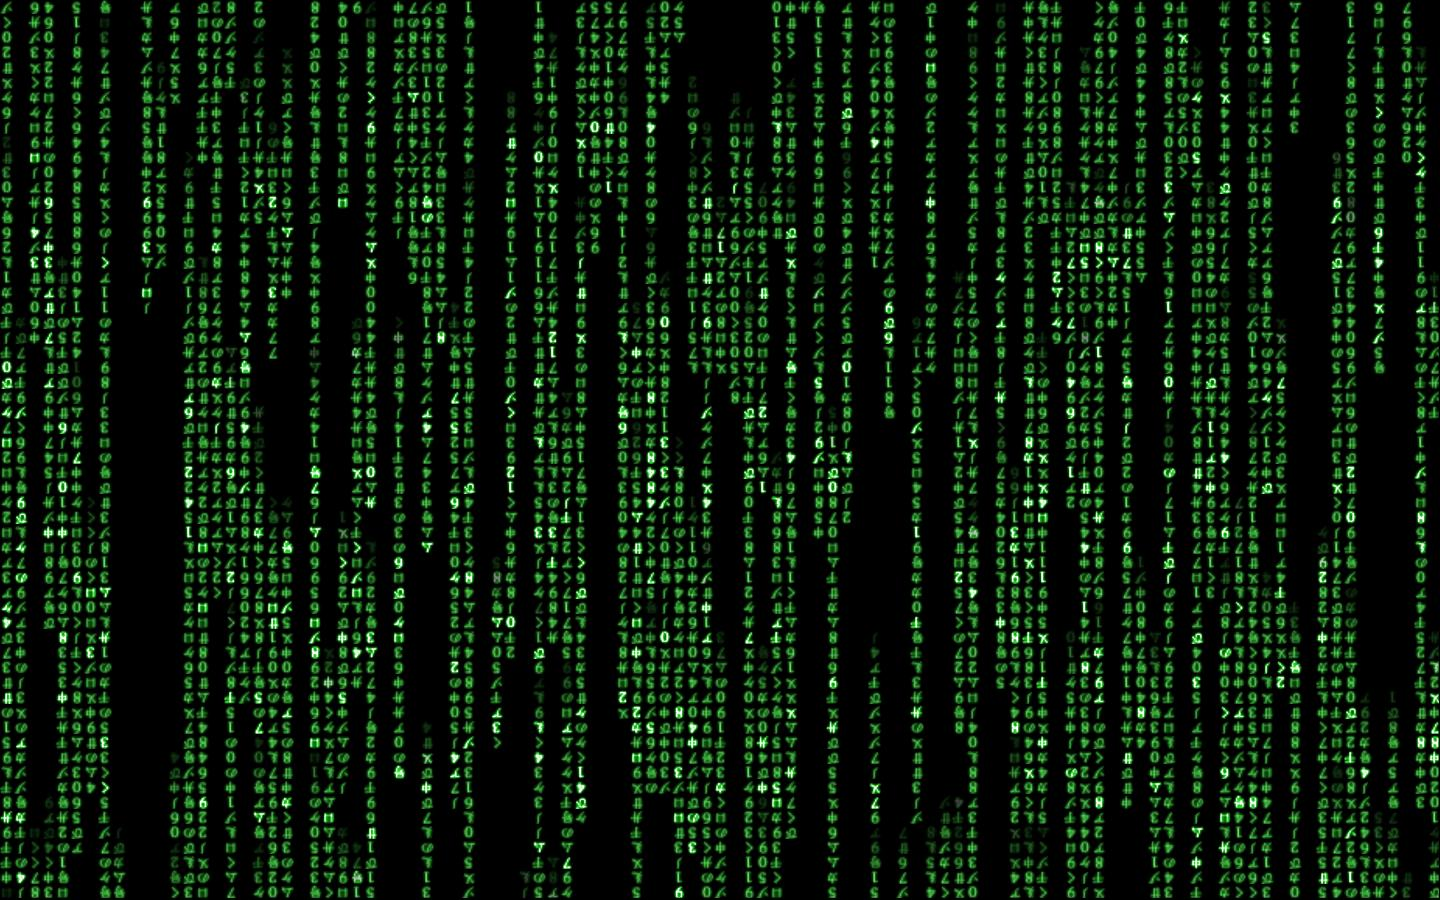 Download Animated Matrix Wallpaper 1440x900